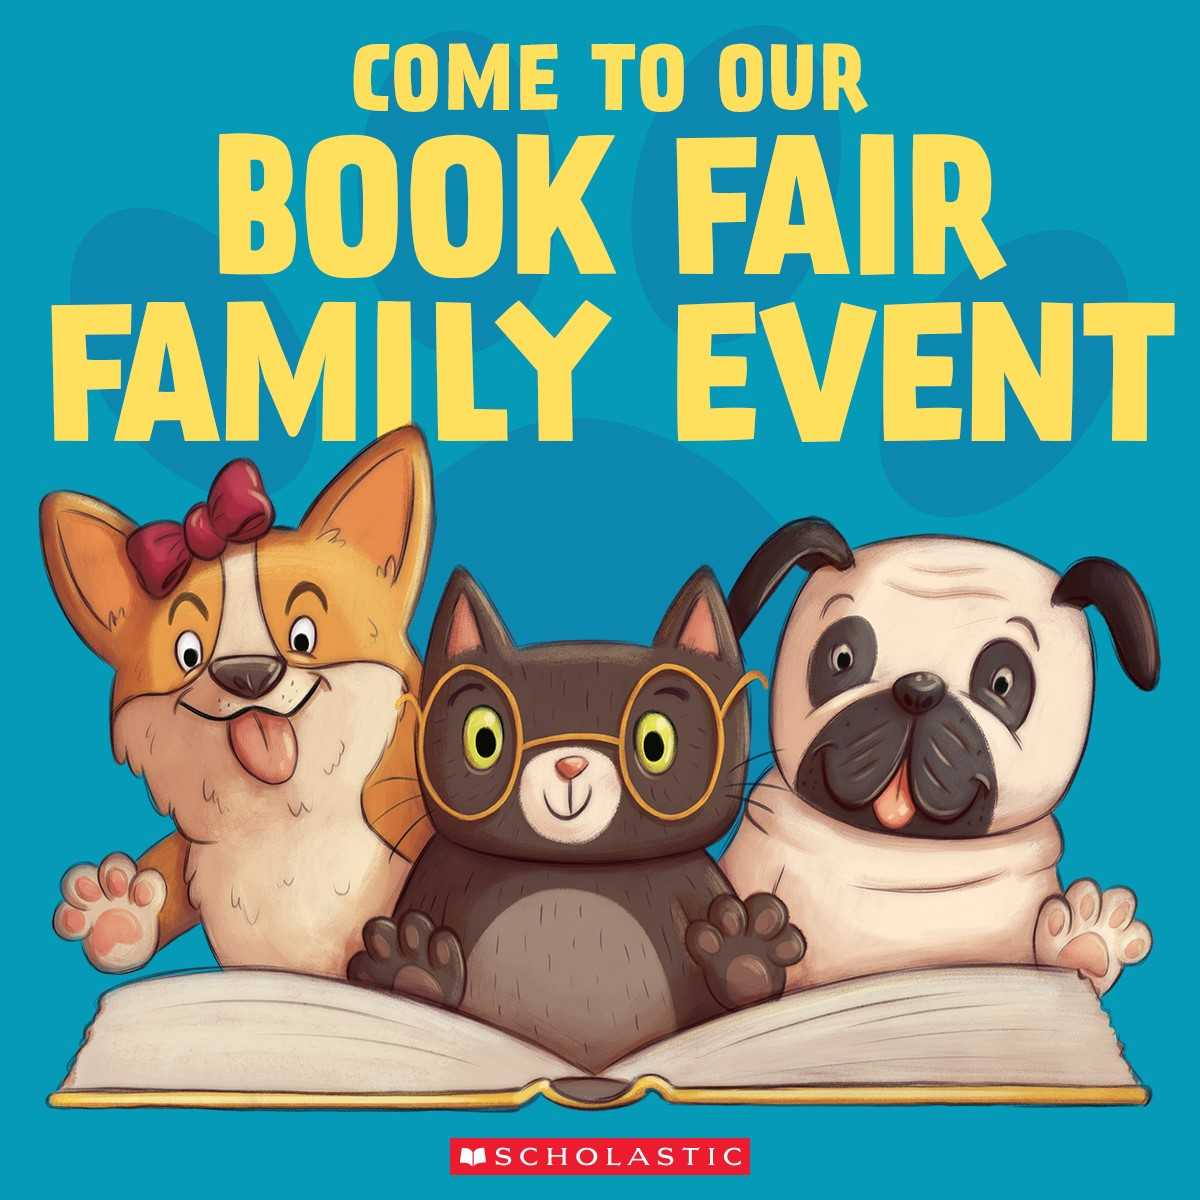 Family Bookfair Night